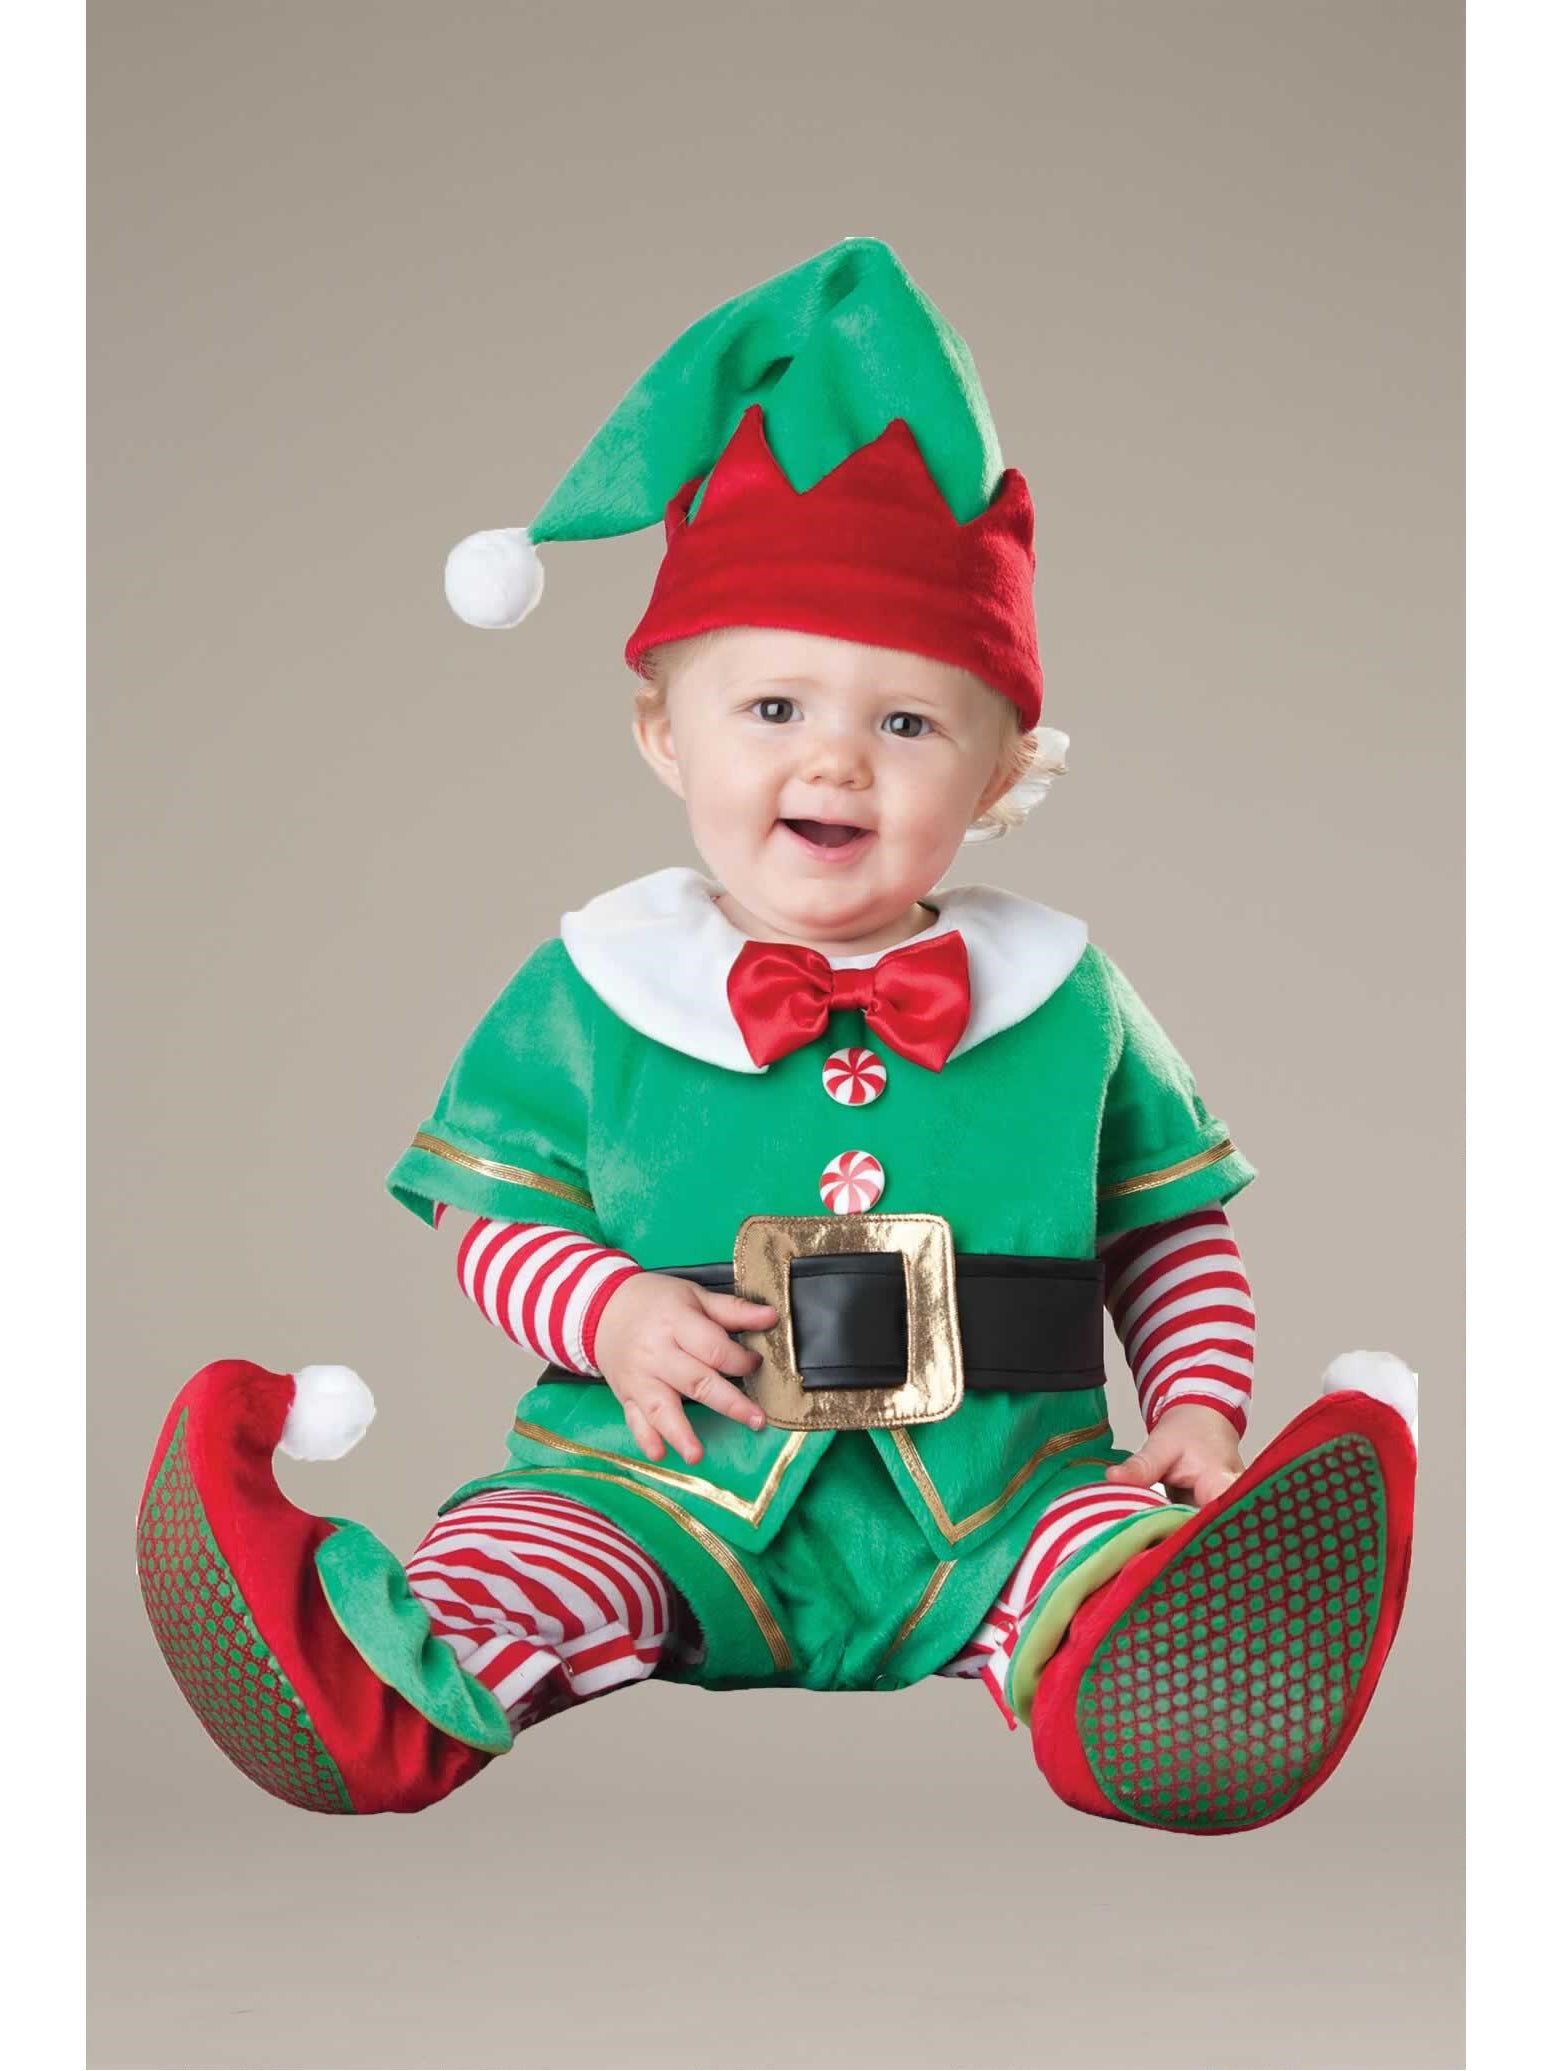 CHILD ELF NORTH POLE SHOES BOYS GIRLS CHRISTMAS COSTUME ACCESSORY